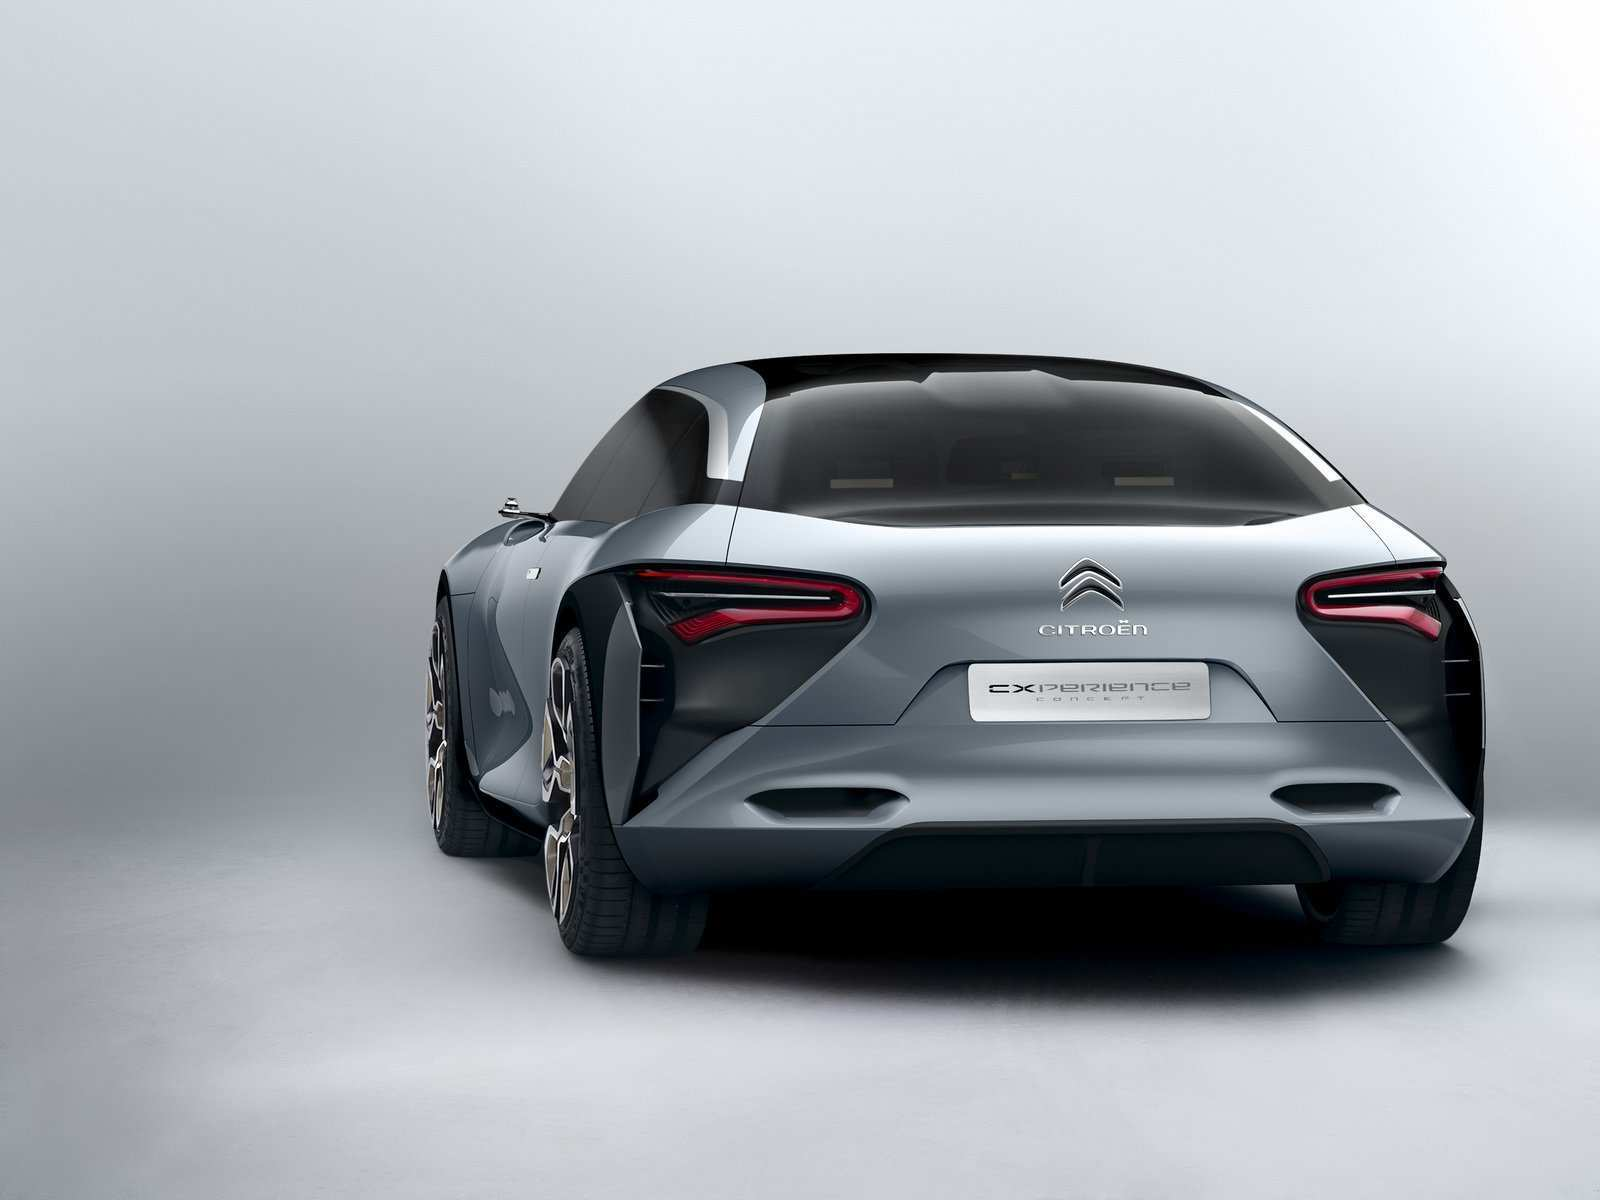 14 All New 2020 Citroen C5 Pictures by 2020 Citroen C5